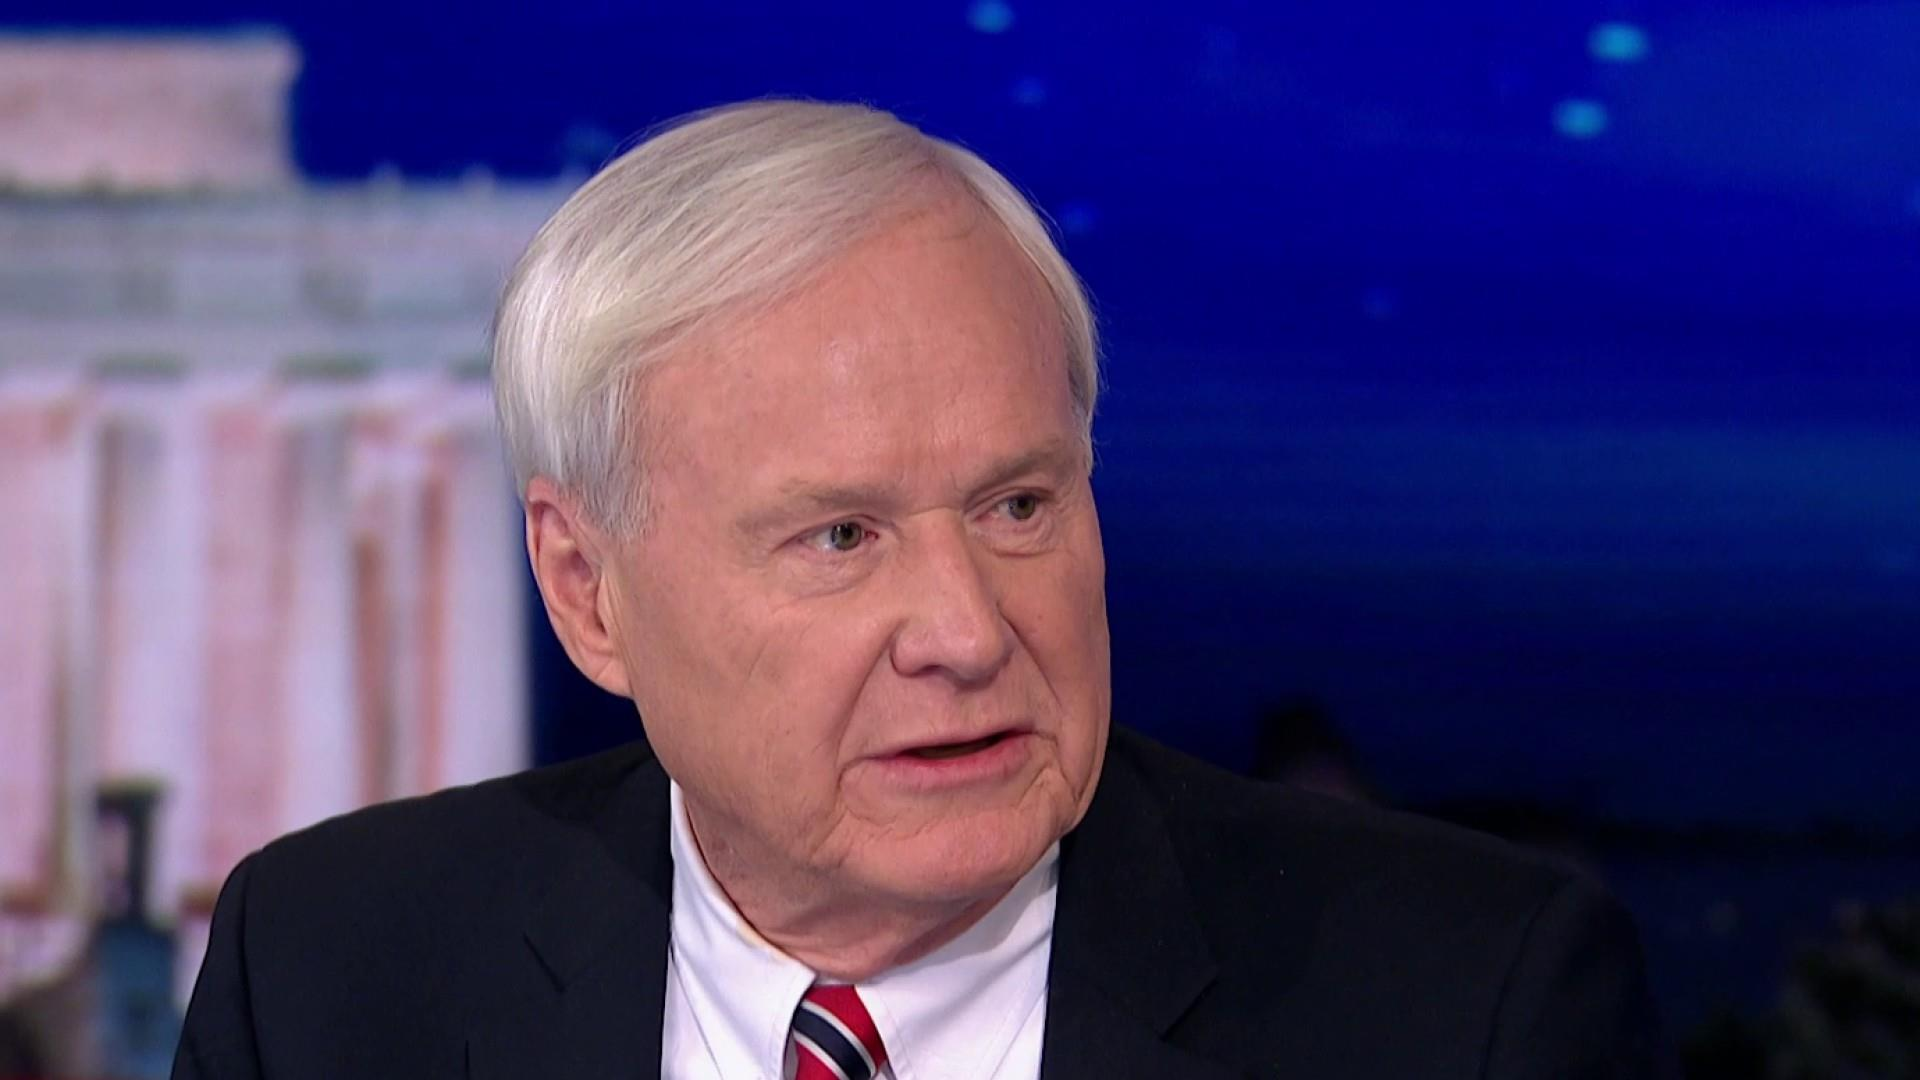 Chris Matthews: Trump's crowd is running the govt, they're a mob